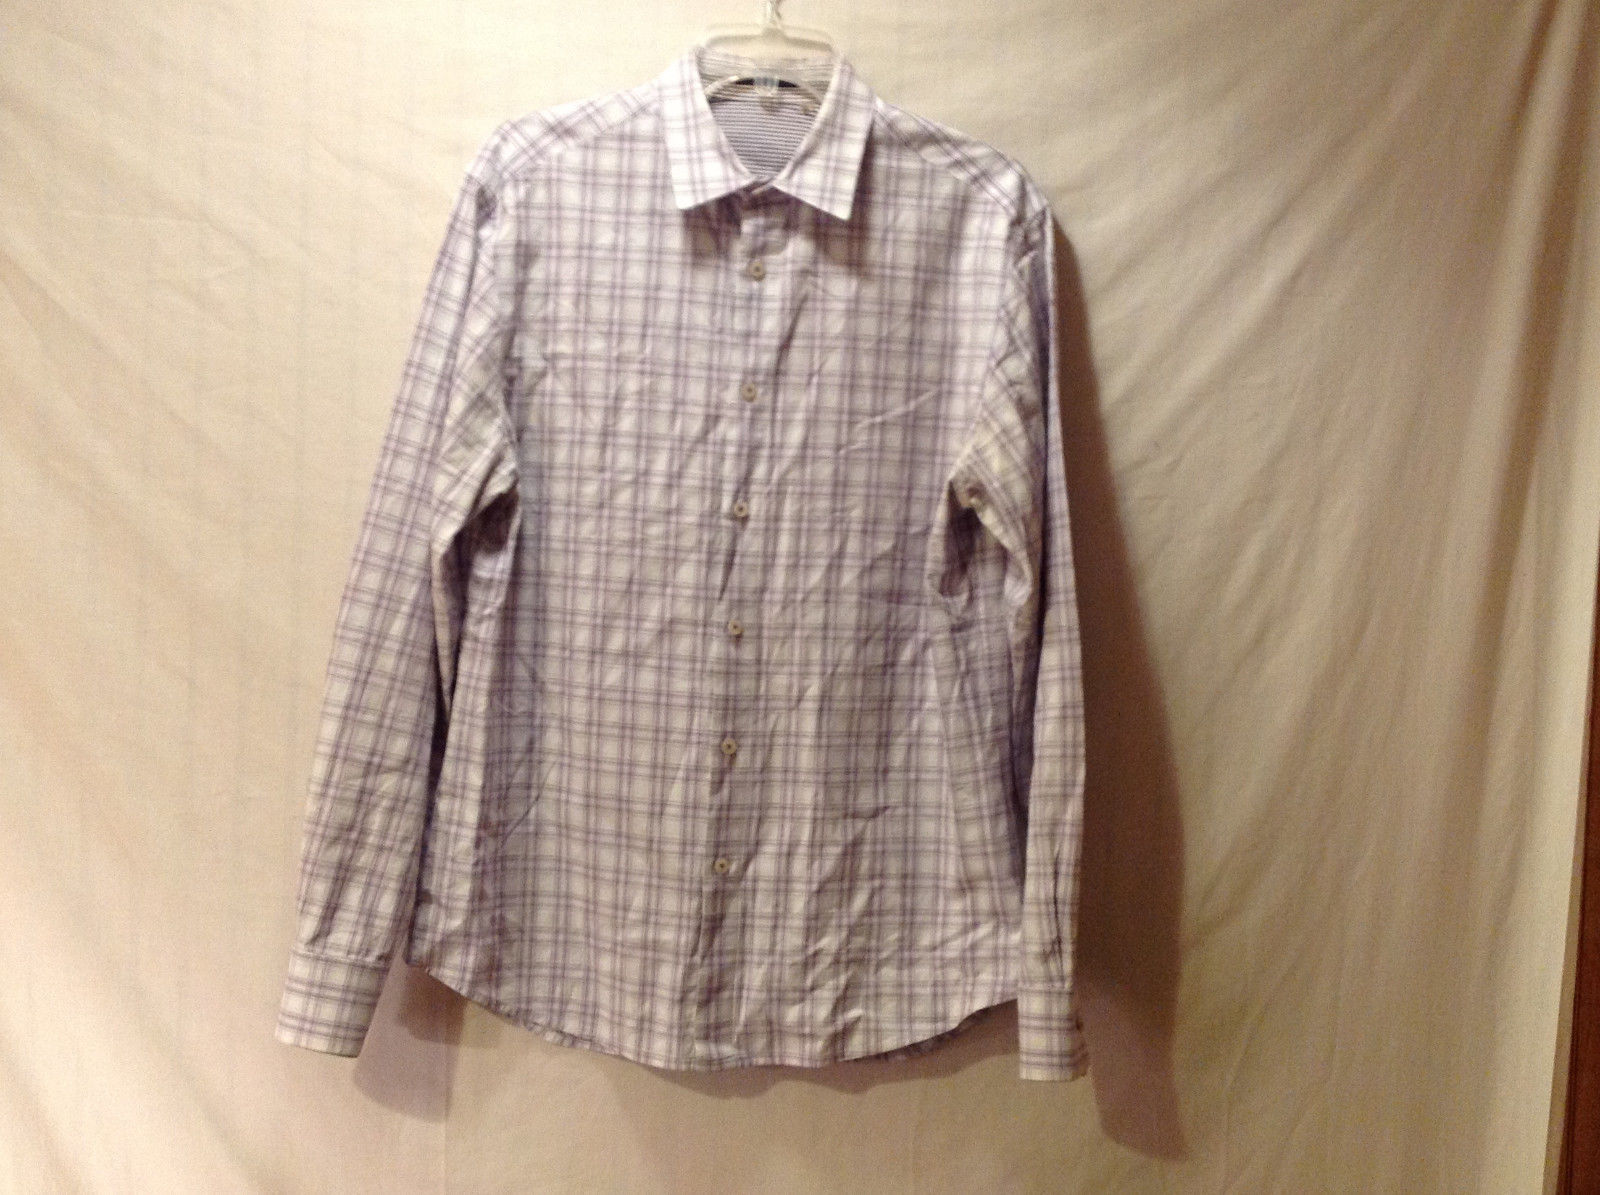 Elie Tahari Men's Size M Shirt Button Down Plaid Check in Lavender Gray White